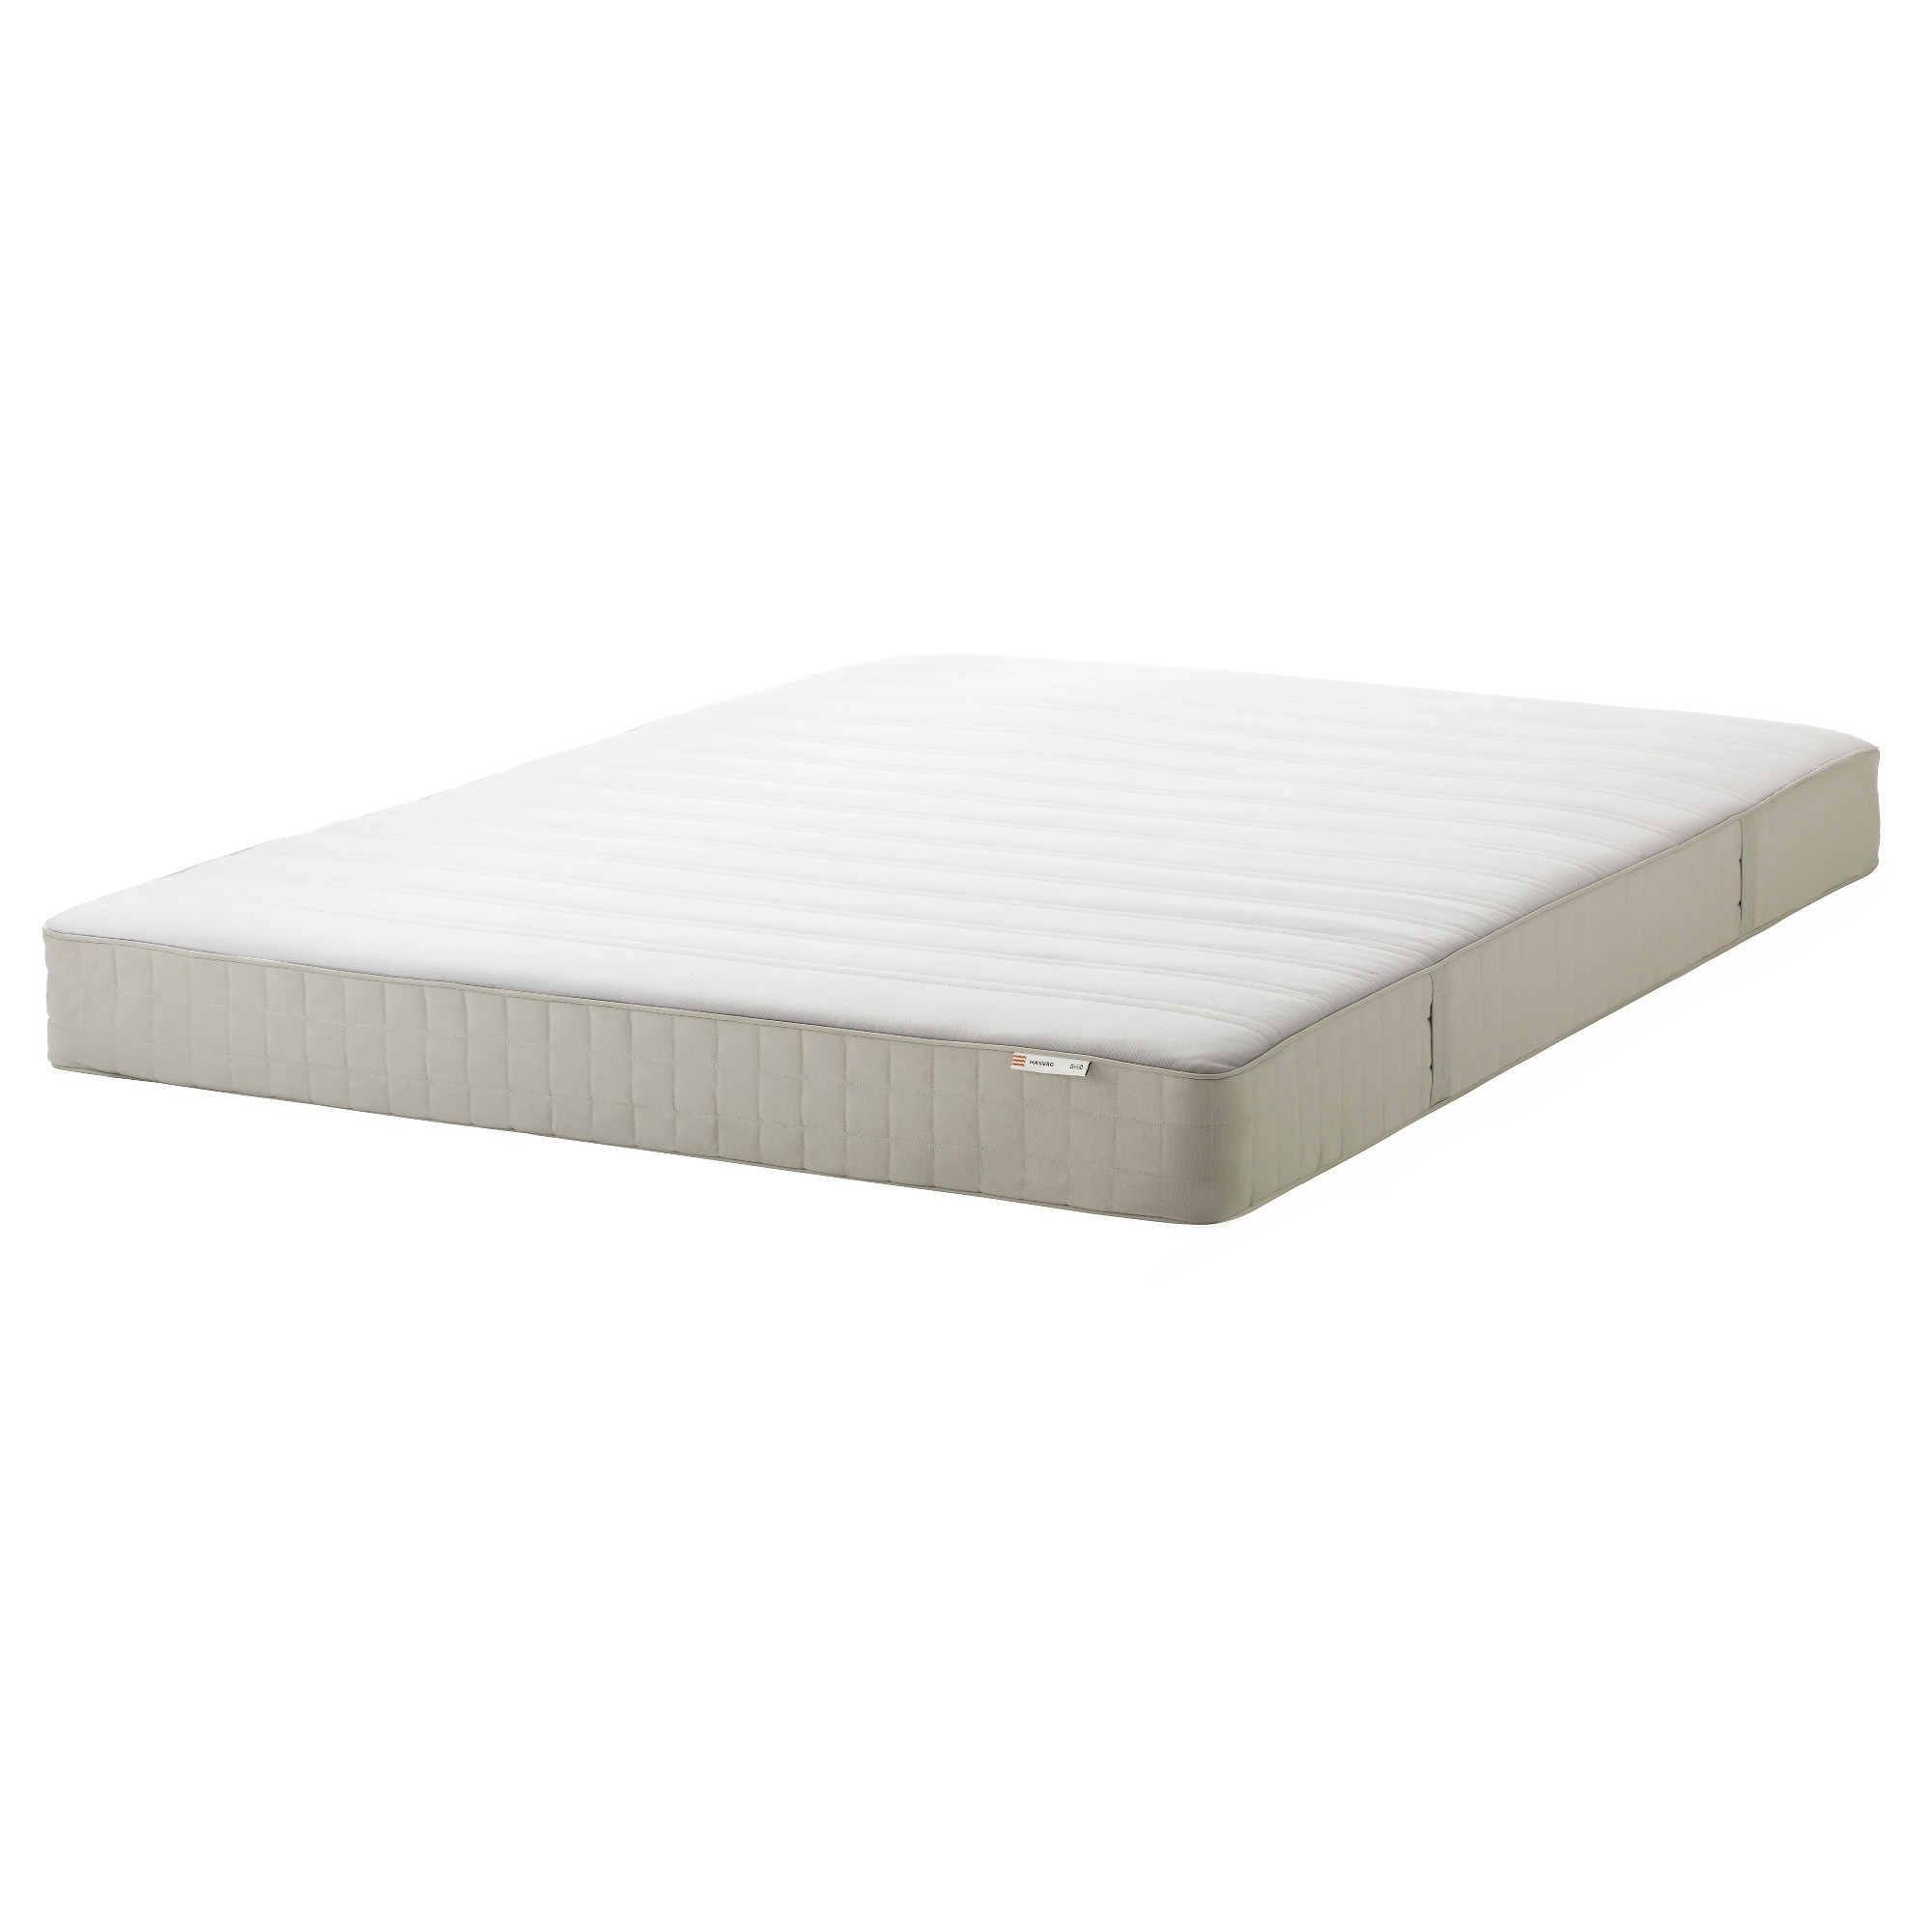 ikea mattress 25 year guarantee best ikea furniture